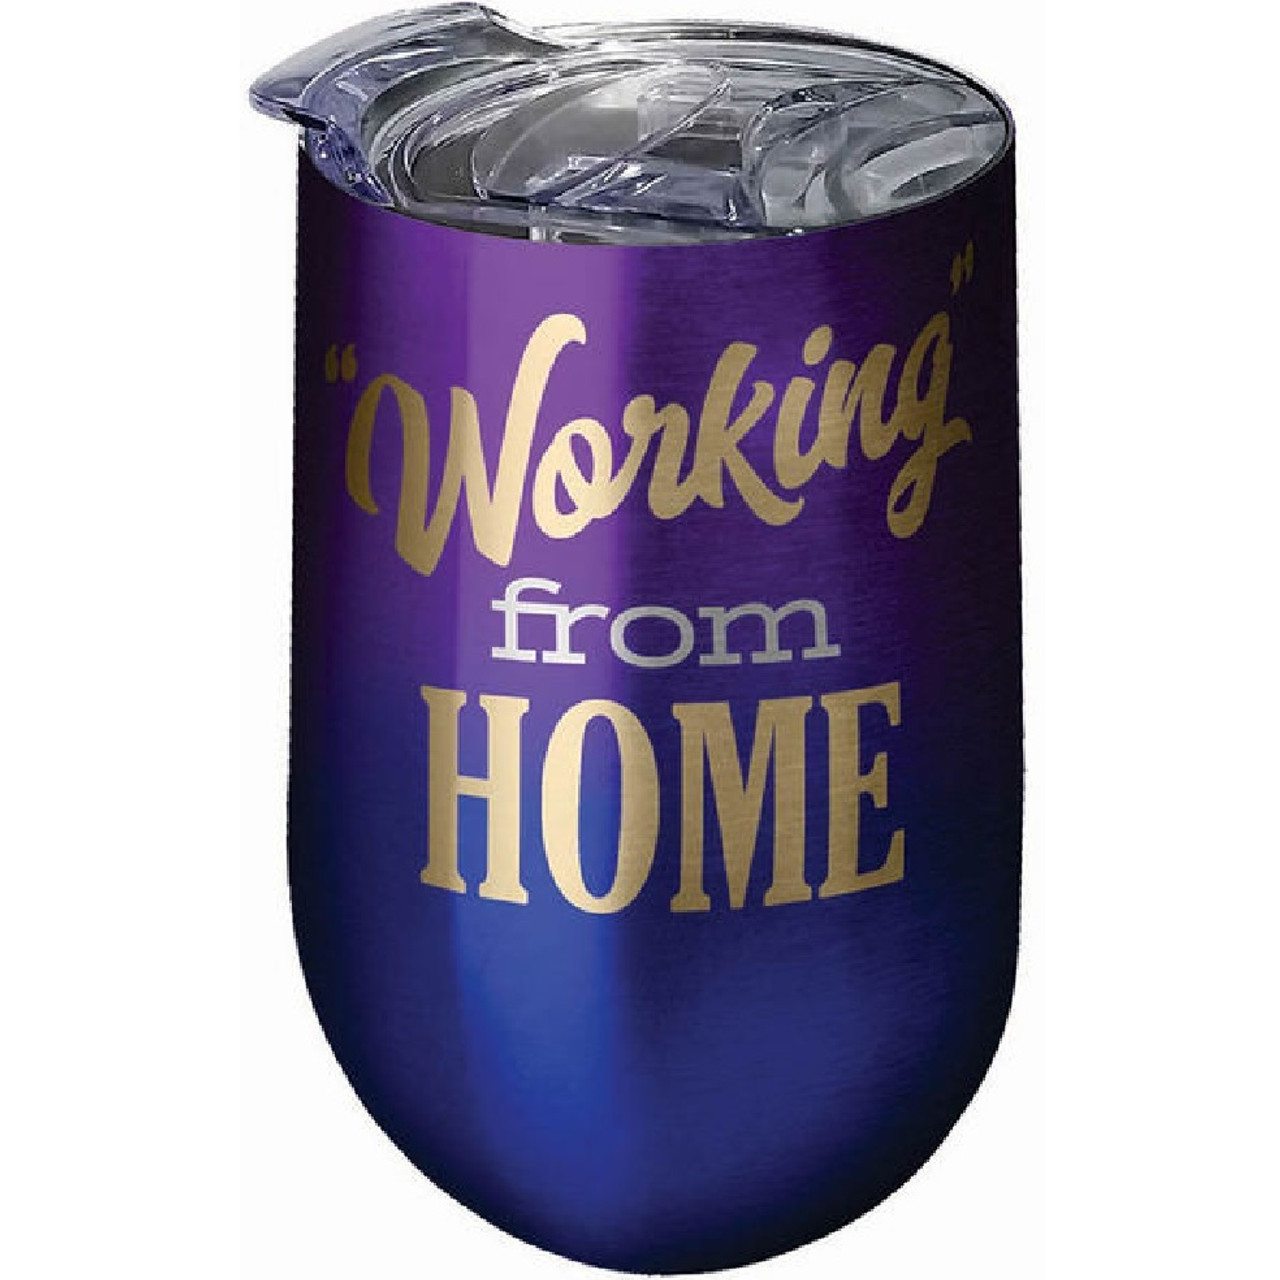 'working From Home' Stainless Steel Wine Tumbler